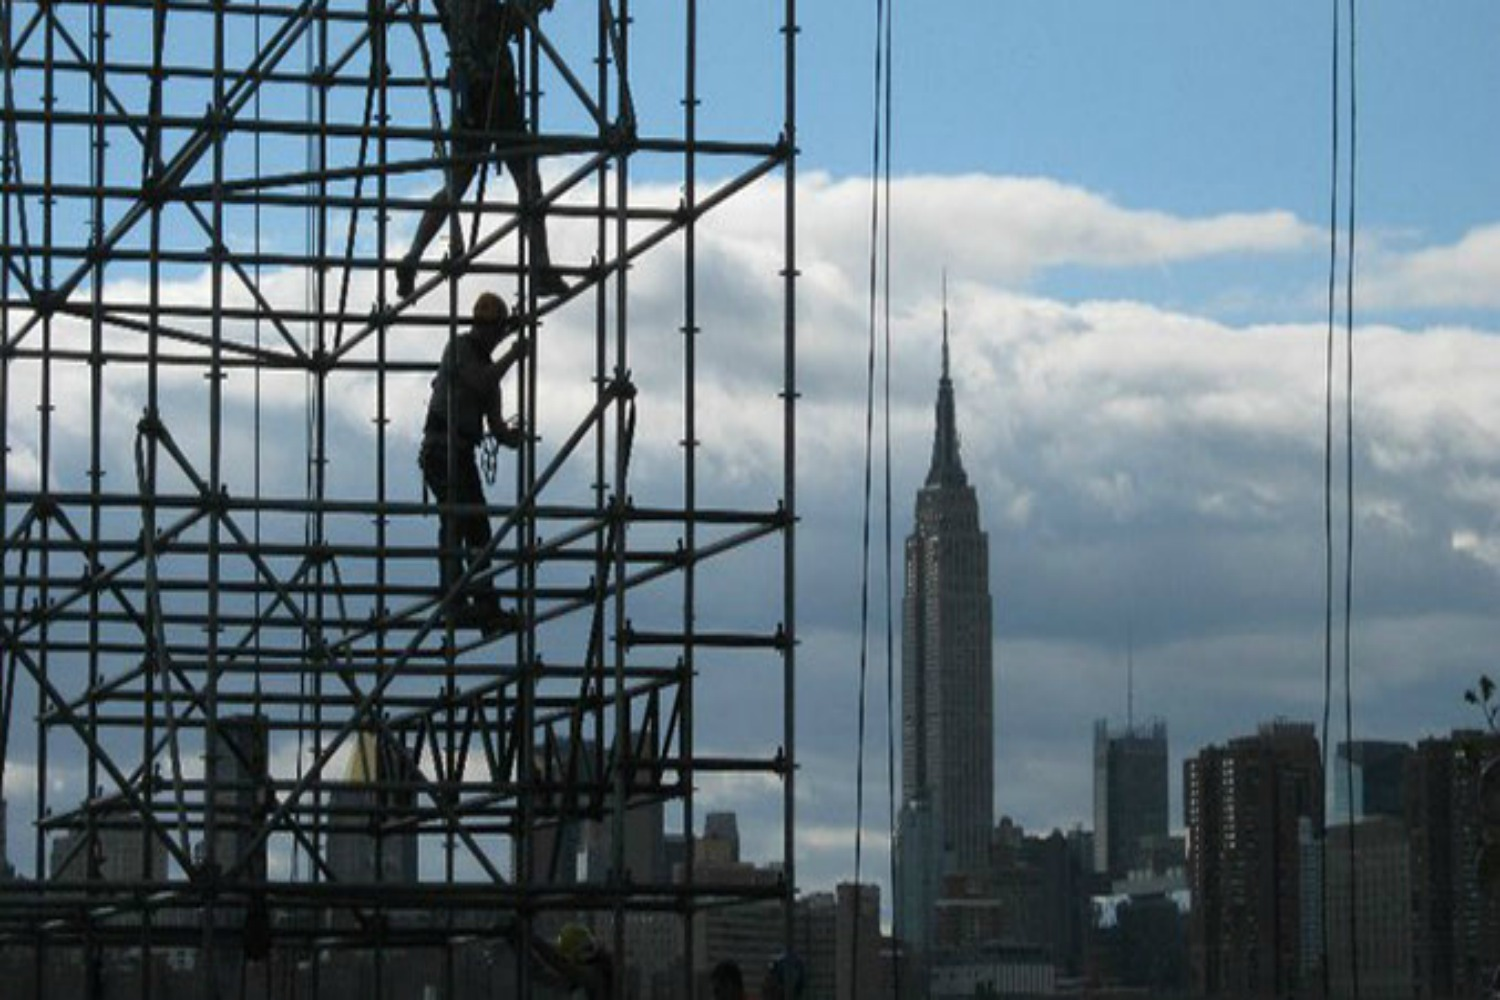 riggers-empire-state-bldg-crop-u8342 1500x1000